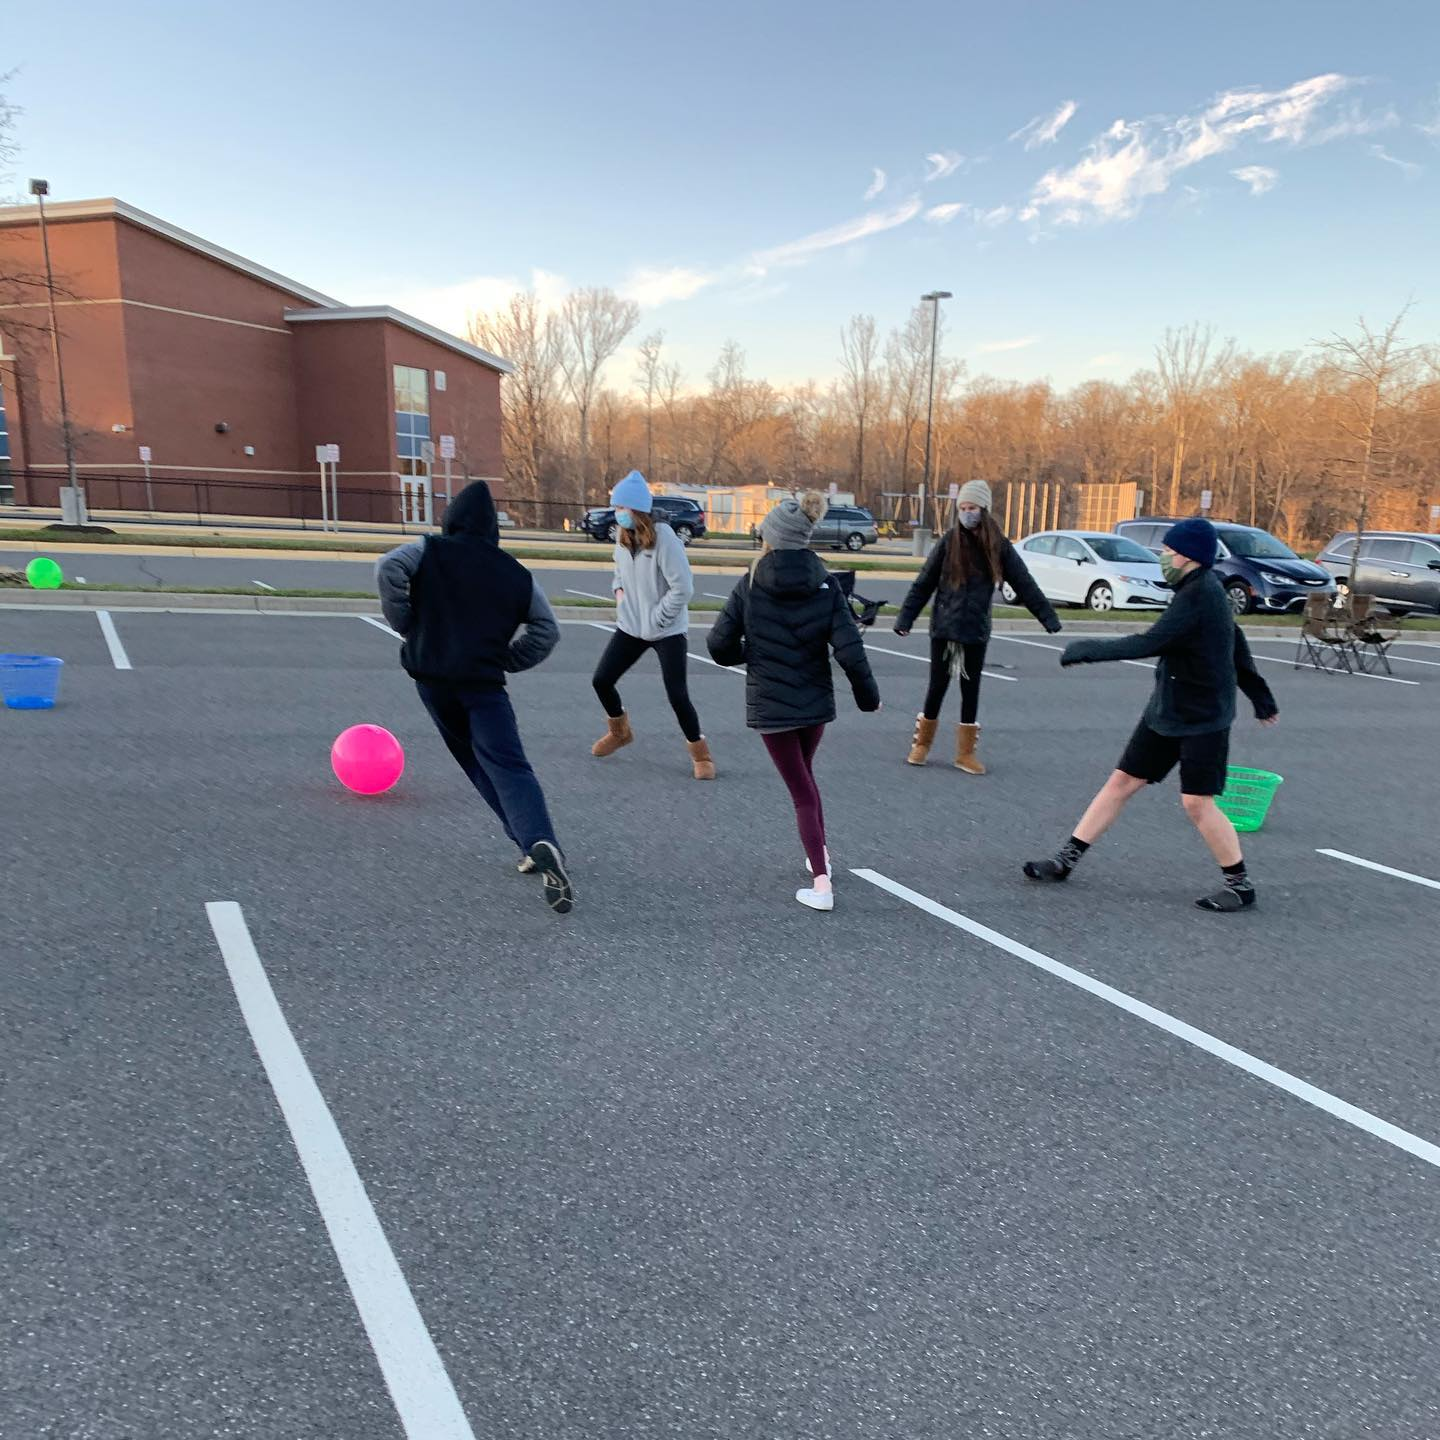 students playing outside